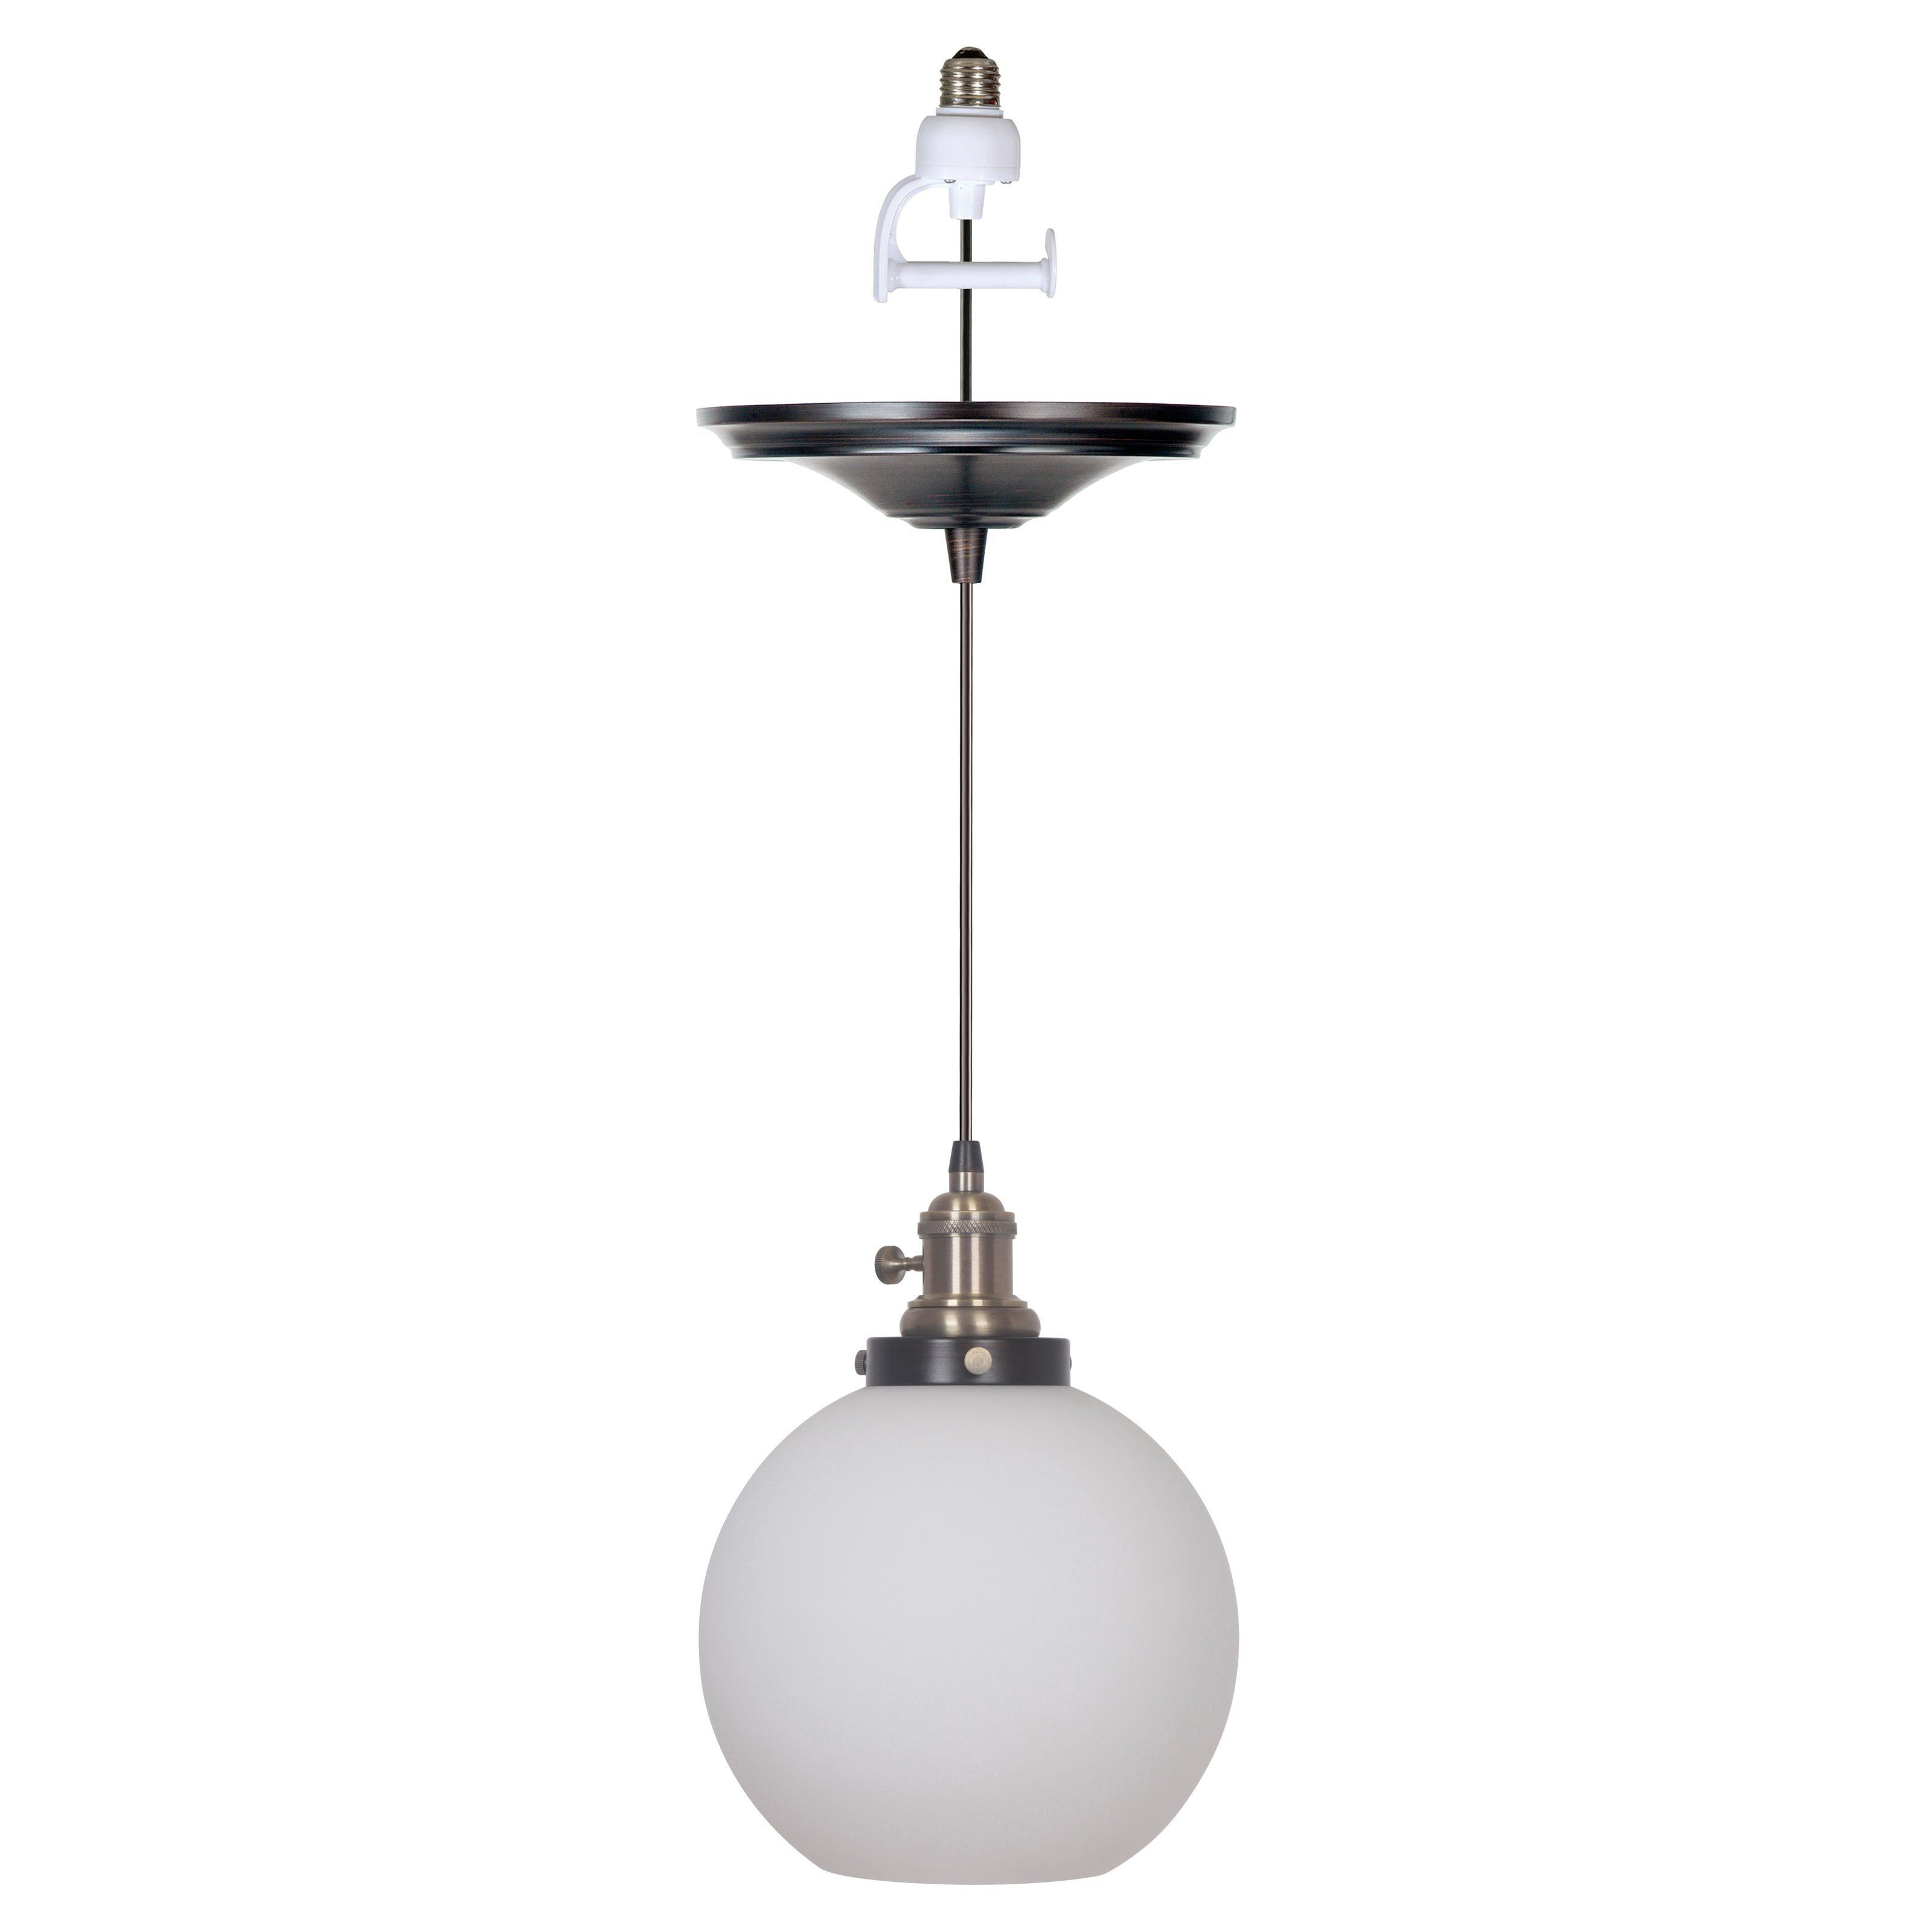 Bautista 1 Light Single Globe Pendants For Most Up To Date Worth Home Products Instant Screw In Pendant Light With (View 12 of 20)